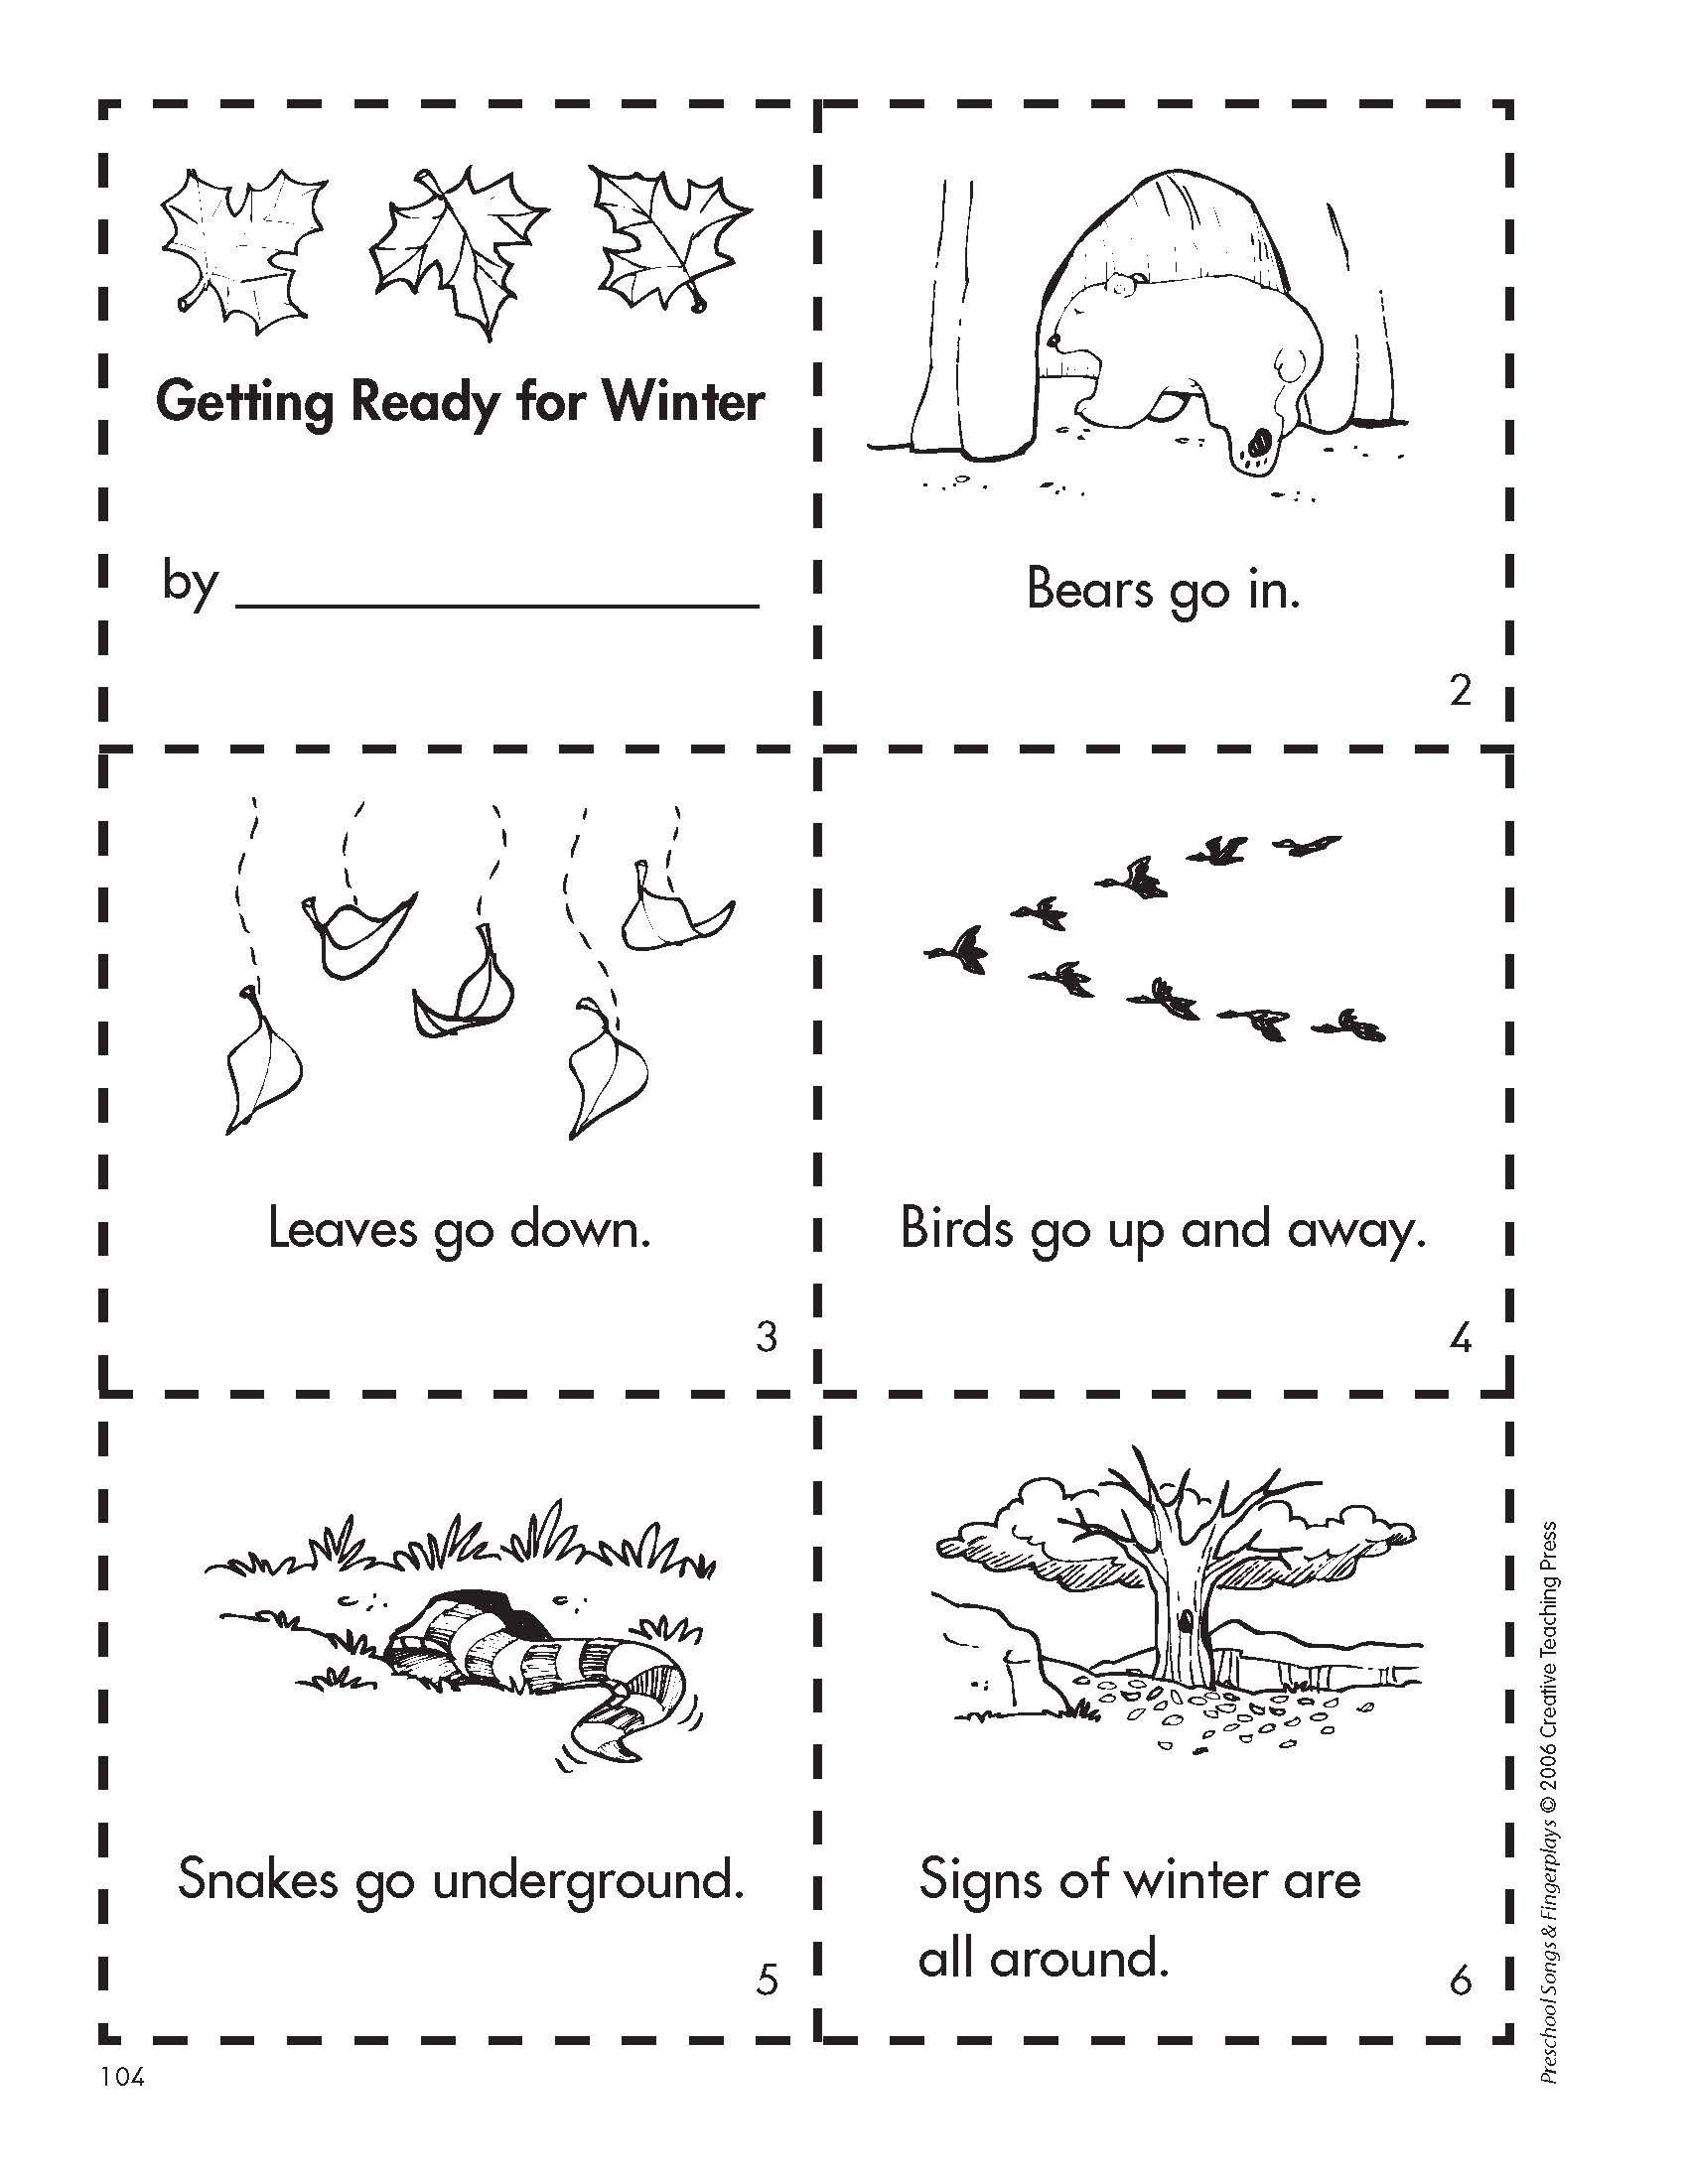 Hibernation Worksheets for Preschool Get Ready for Winter with This Free Minibook Reproducible